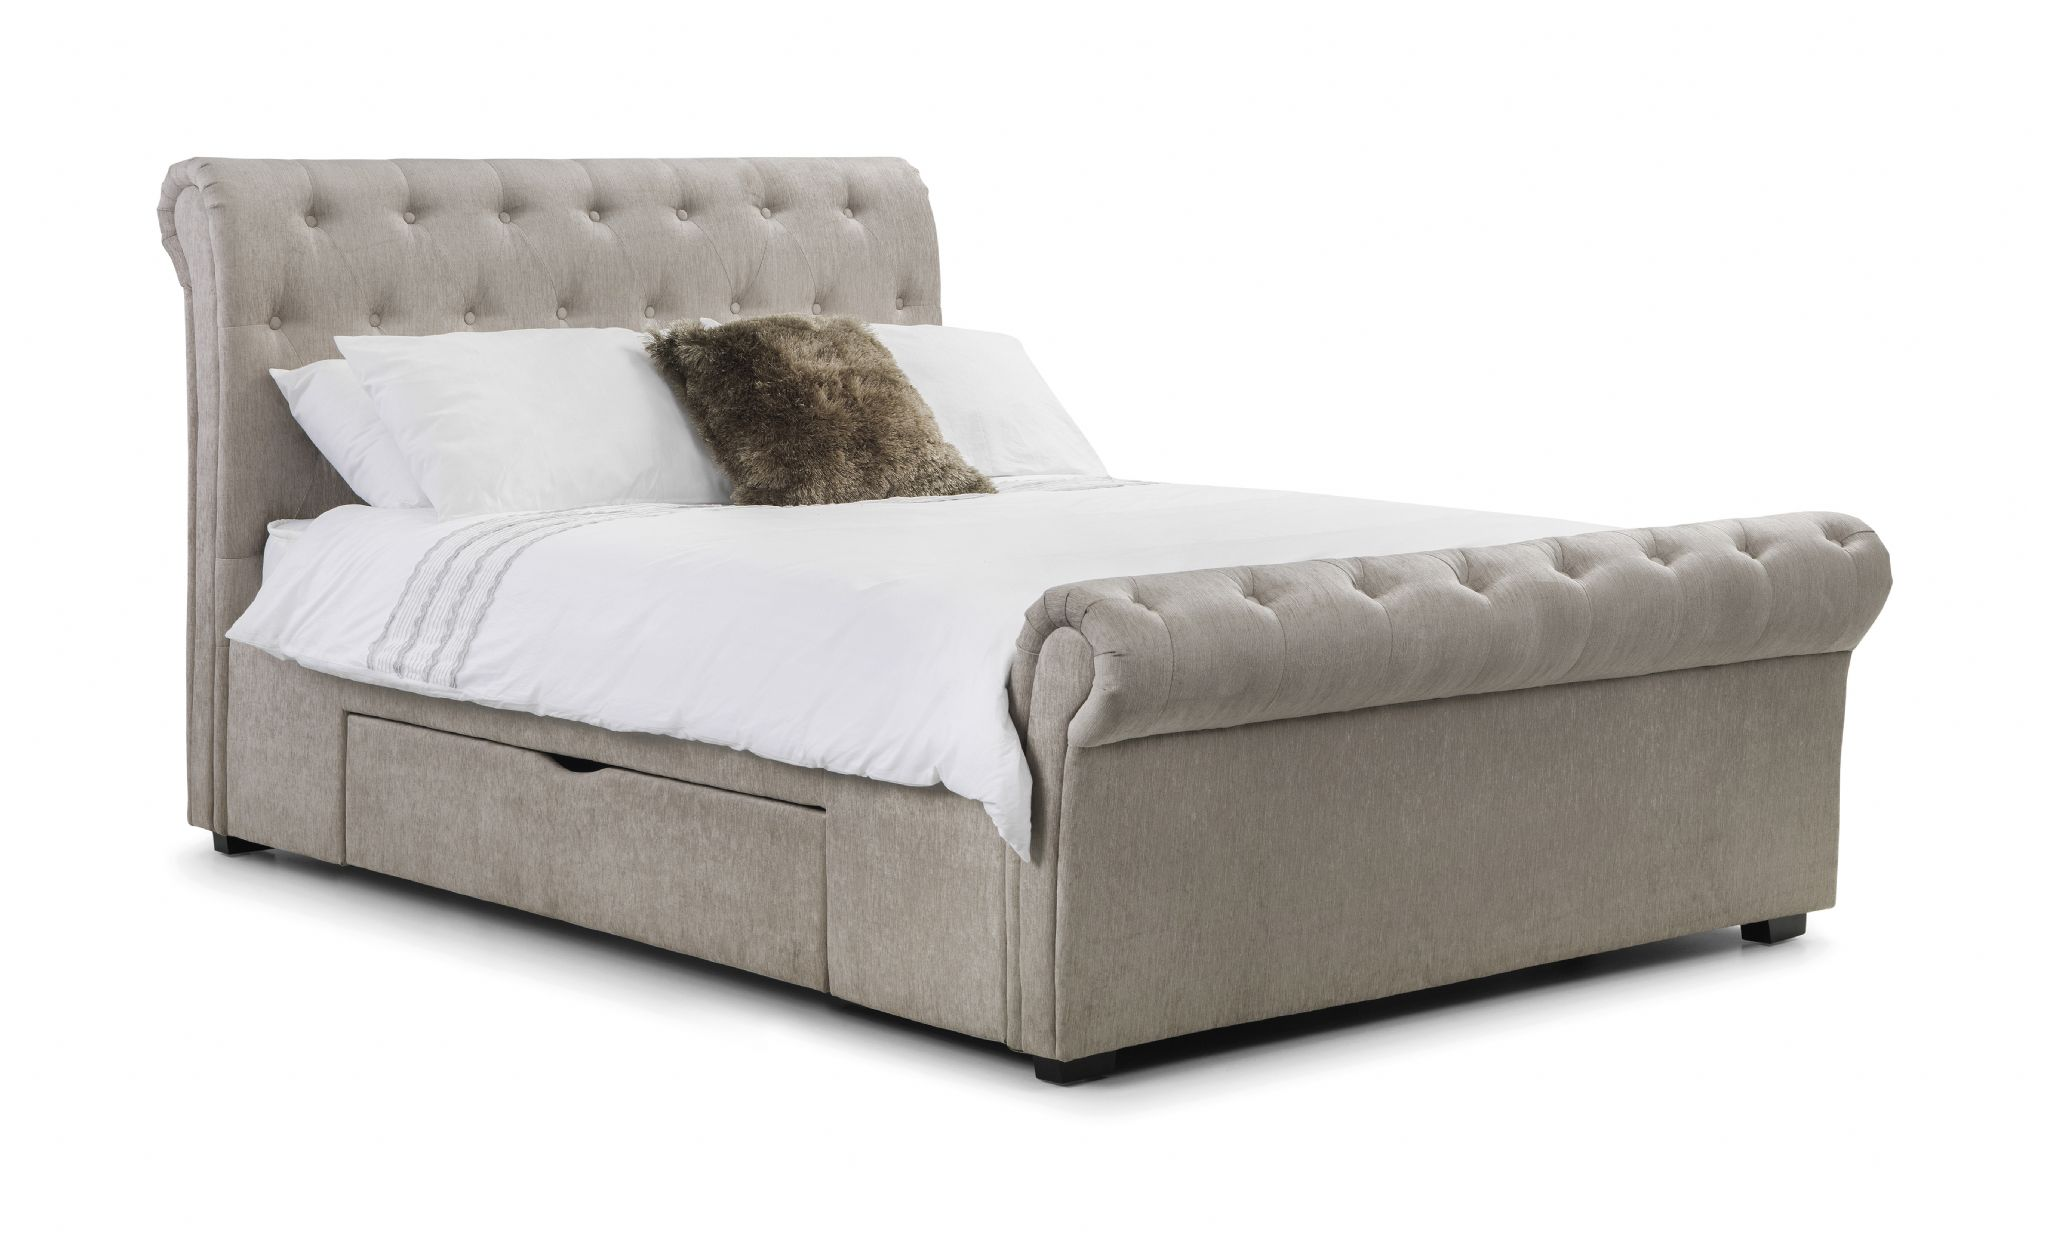 Brindisi Soft Touch Mink Chenille Storage King Size Bed